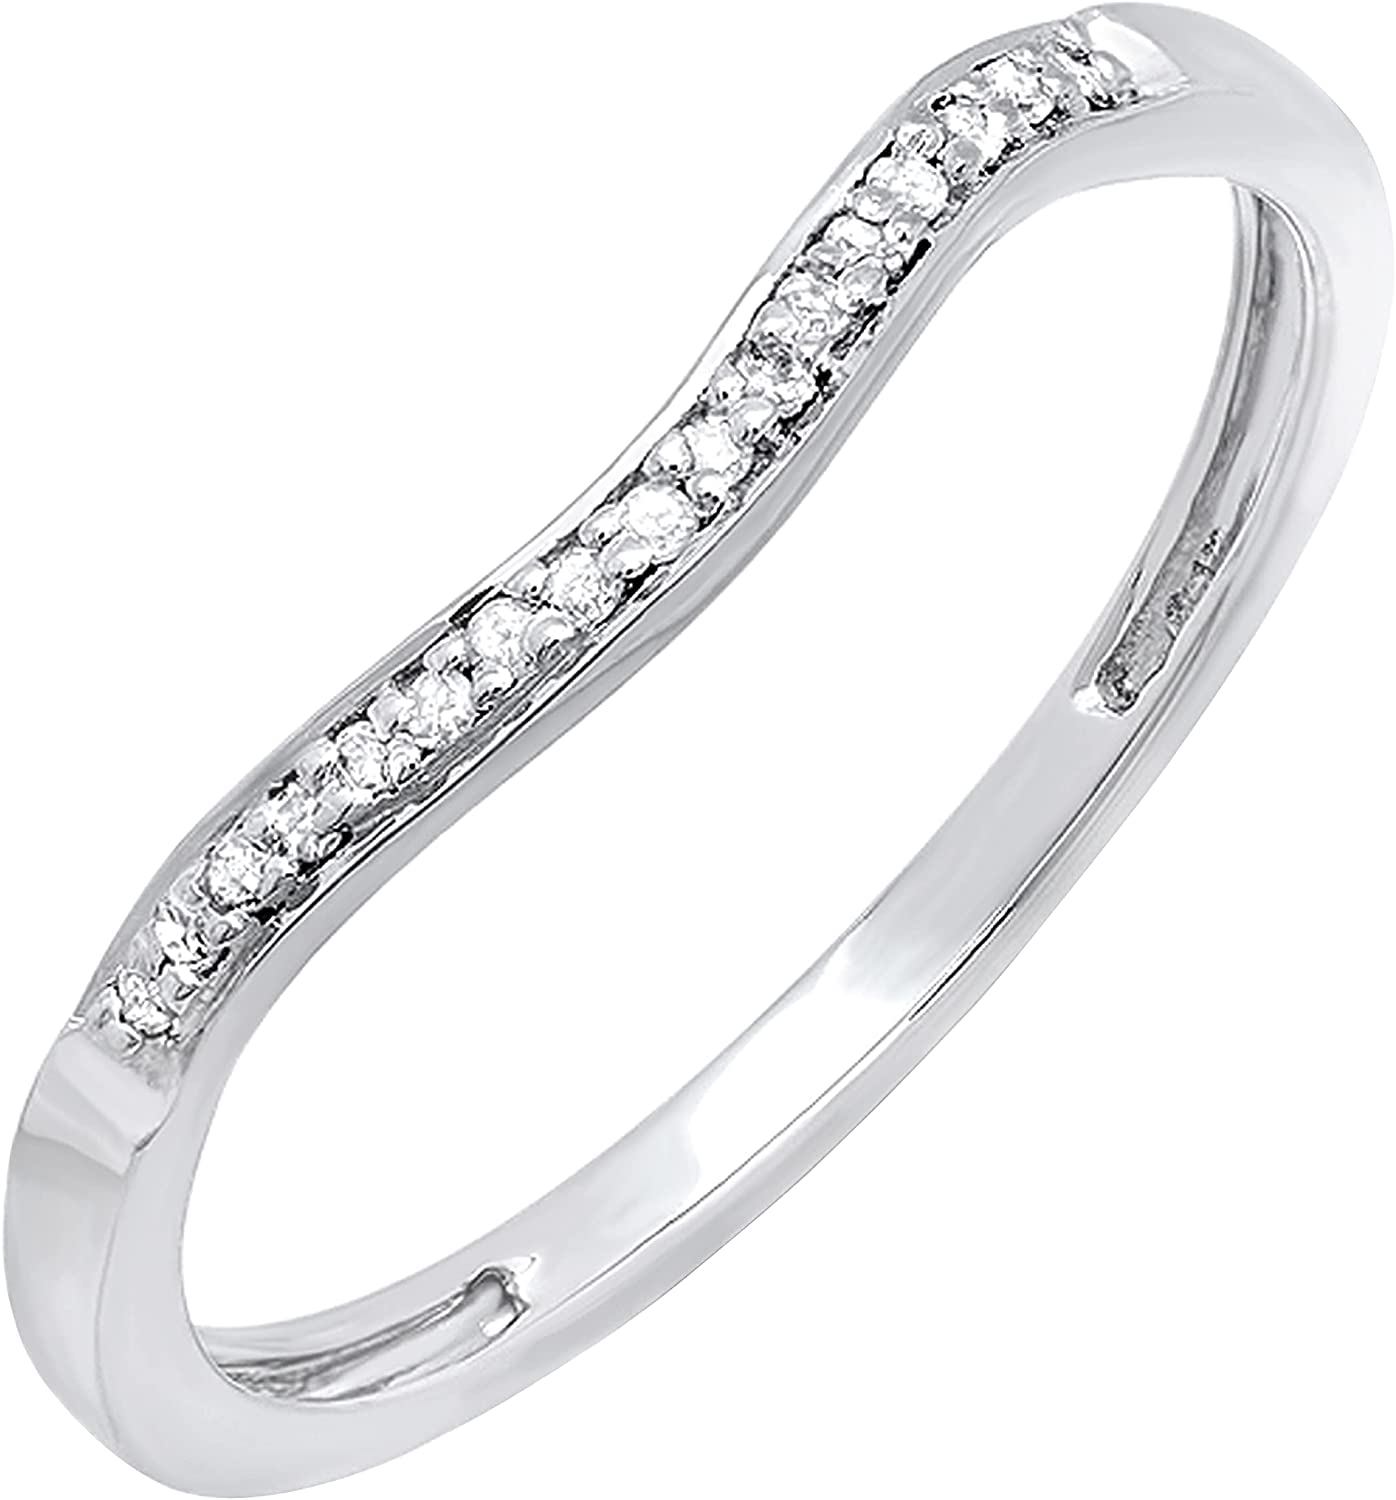 Dazzlingrock Collection 0.10 Carat (ctw) Round Diamond Ladies Enhancer Wrap Guard Curved Style Stackable Wedding Band 1/10 CT | Available in 10K/14K/18K Gold